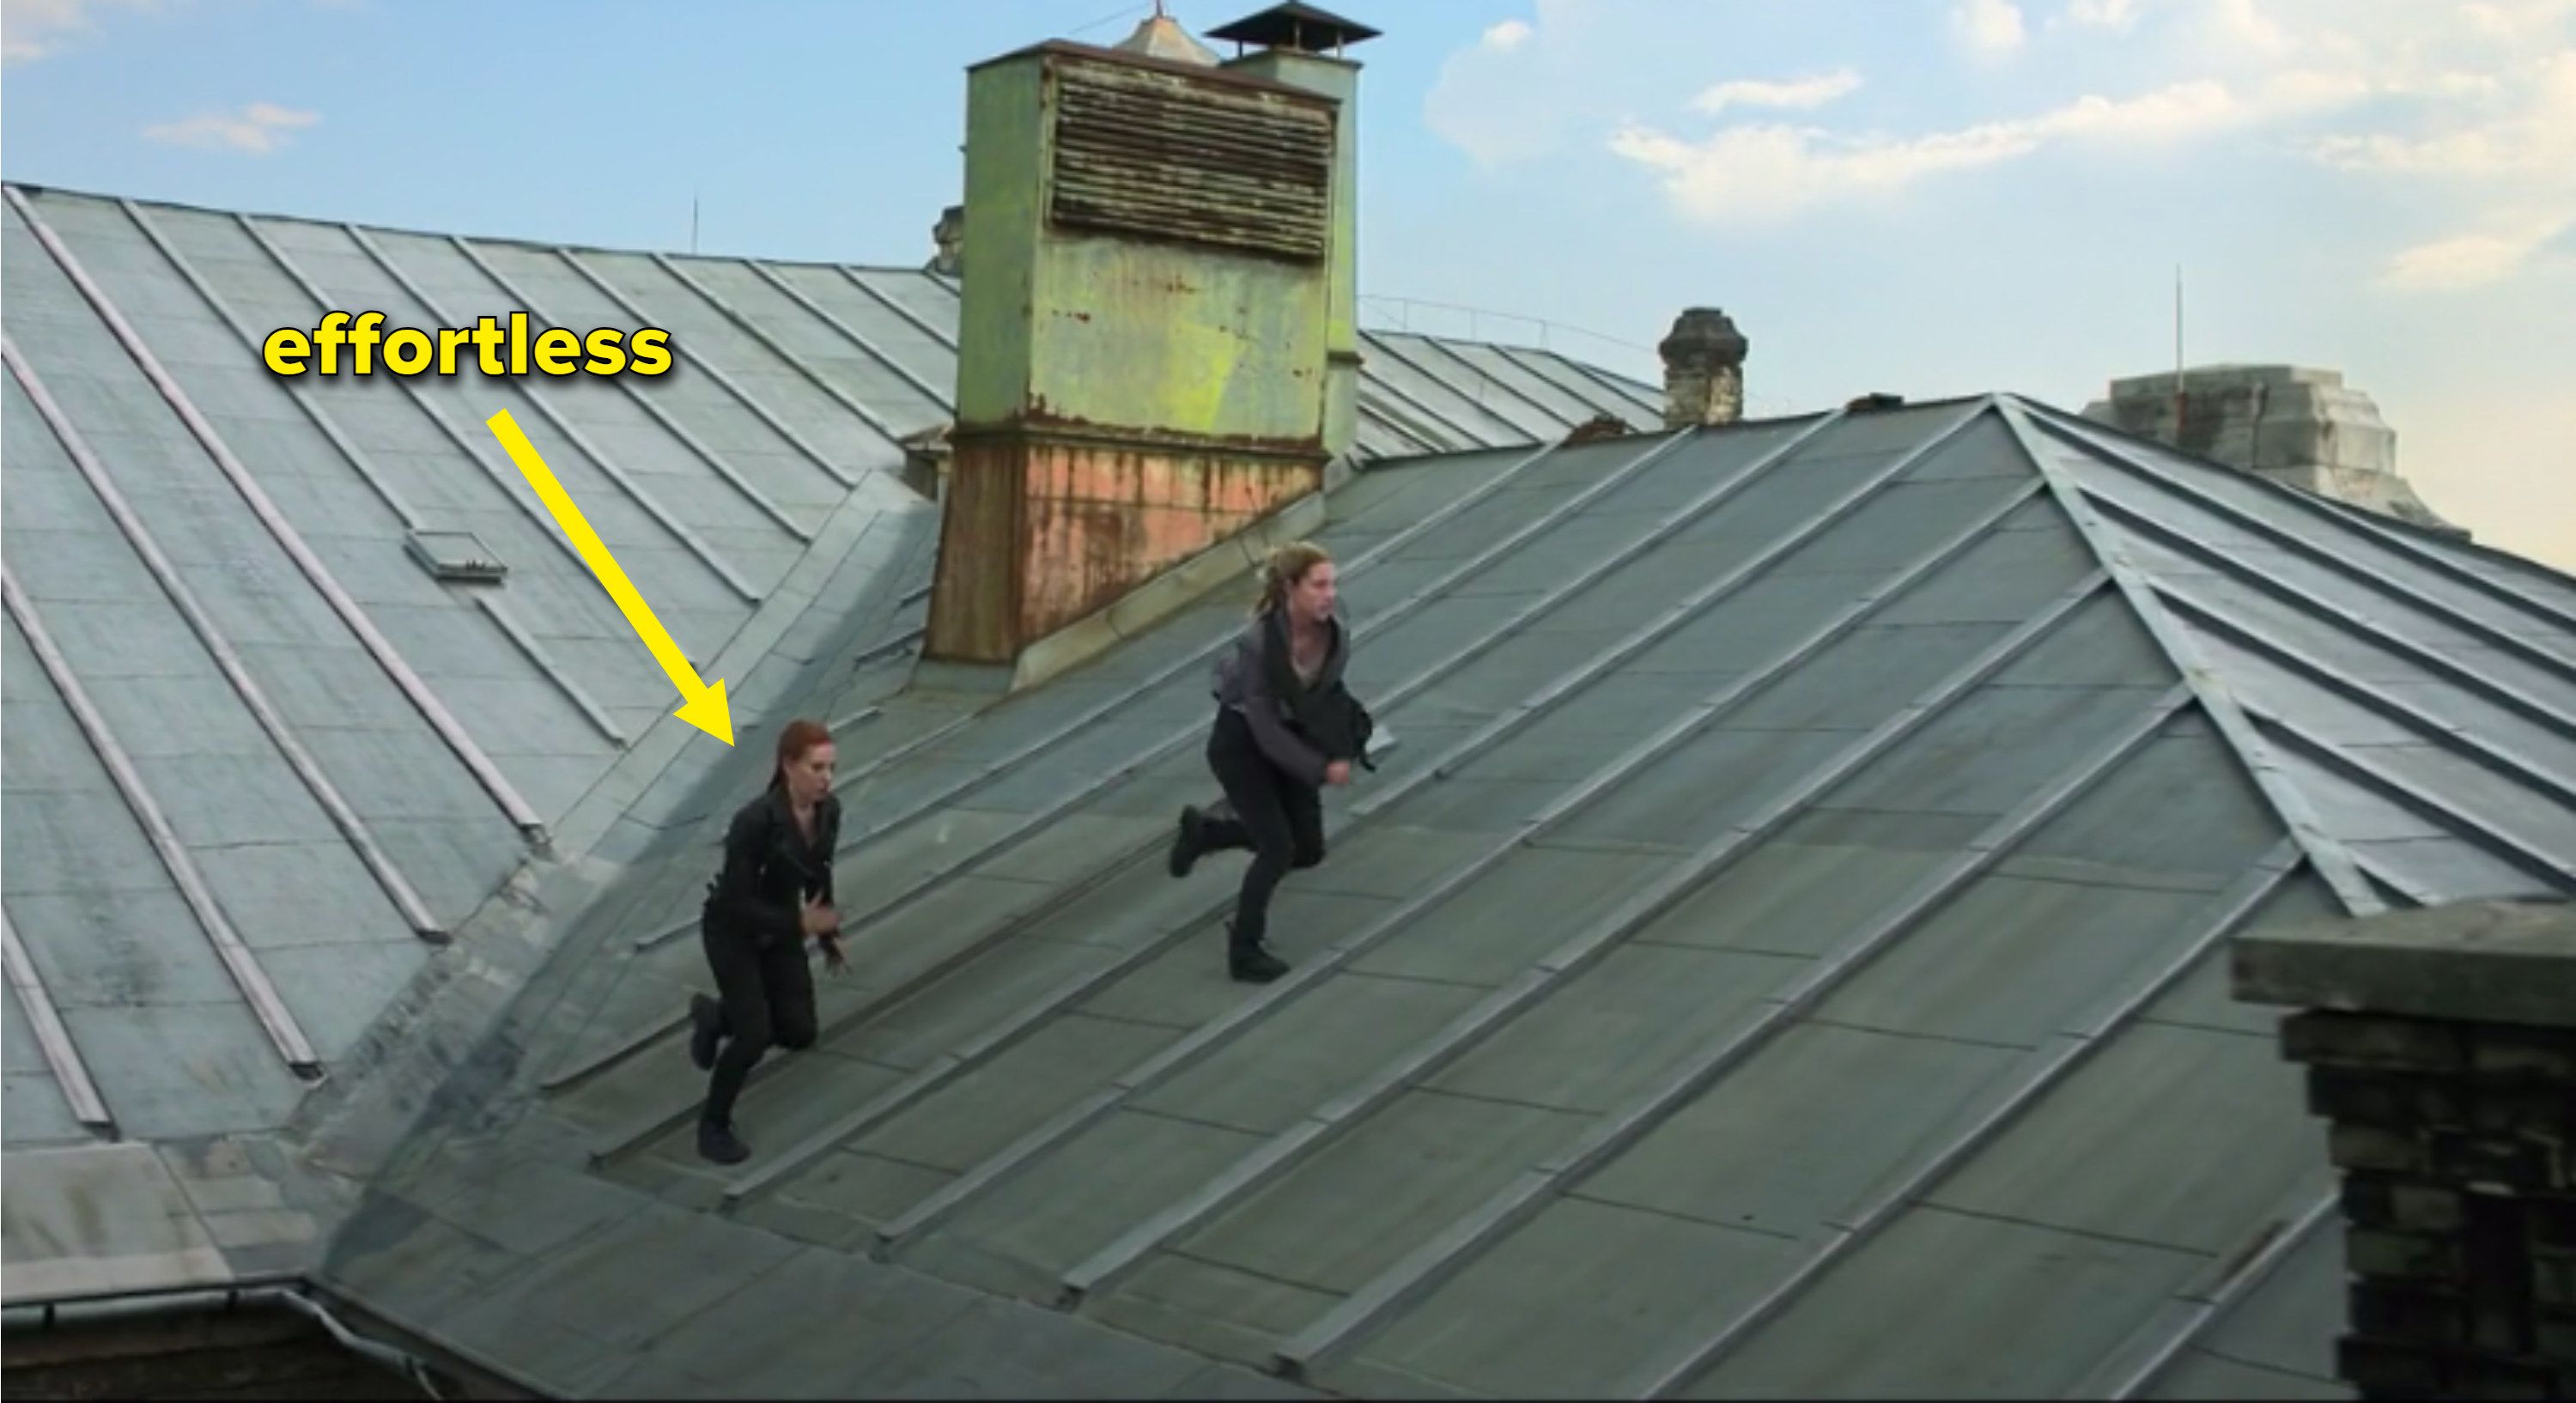 Black widow and Yelena running on the roof